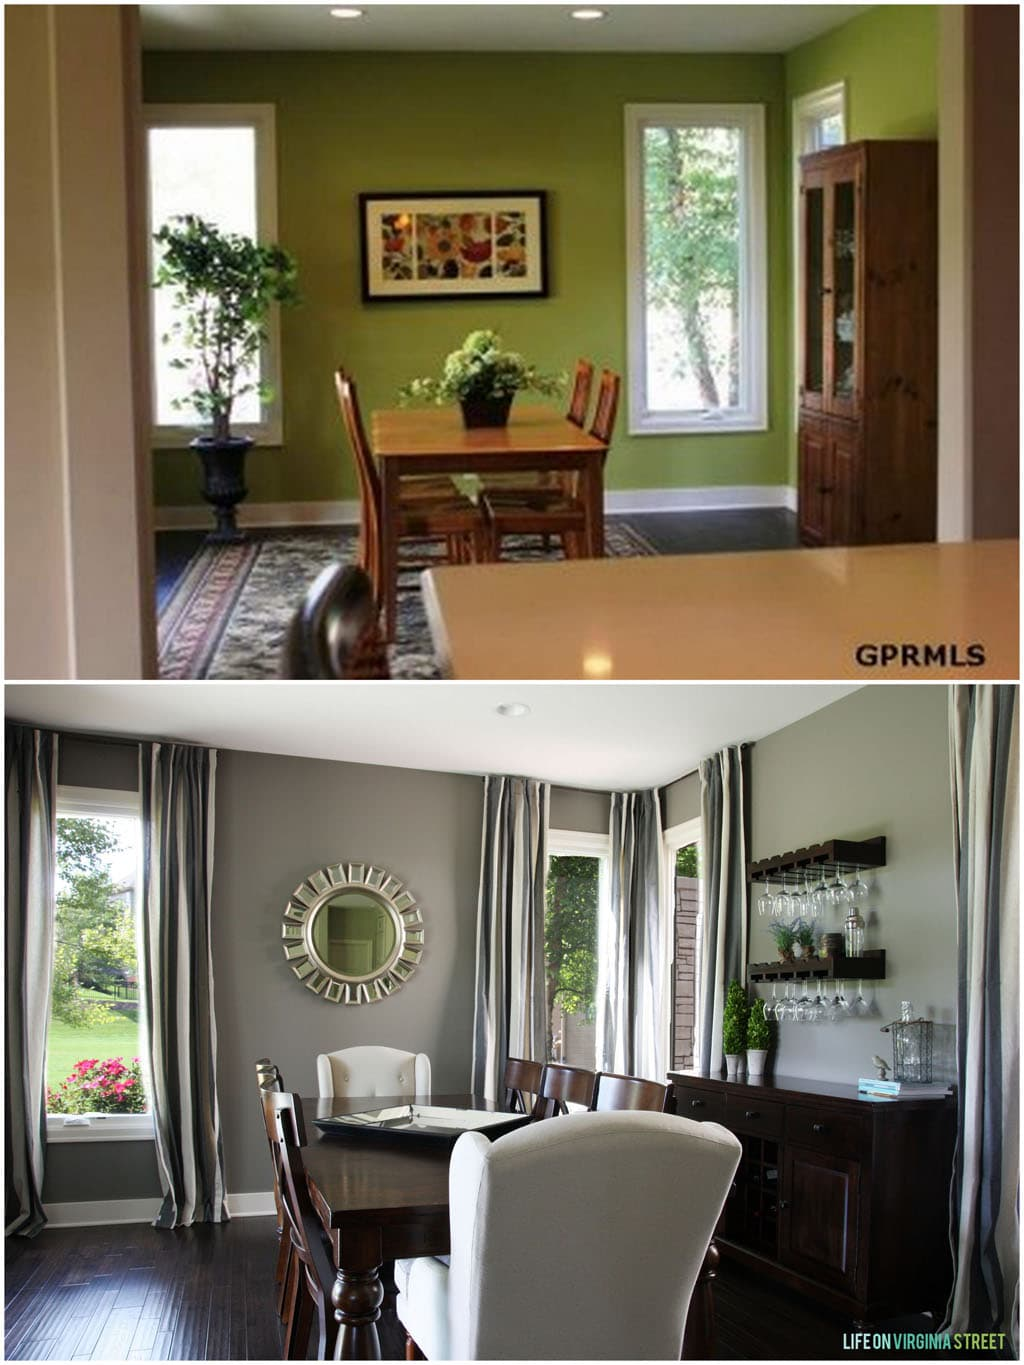 Dining room makeover reveal life on virginia street for Design makeover